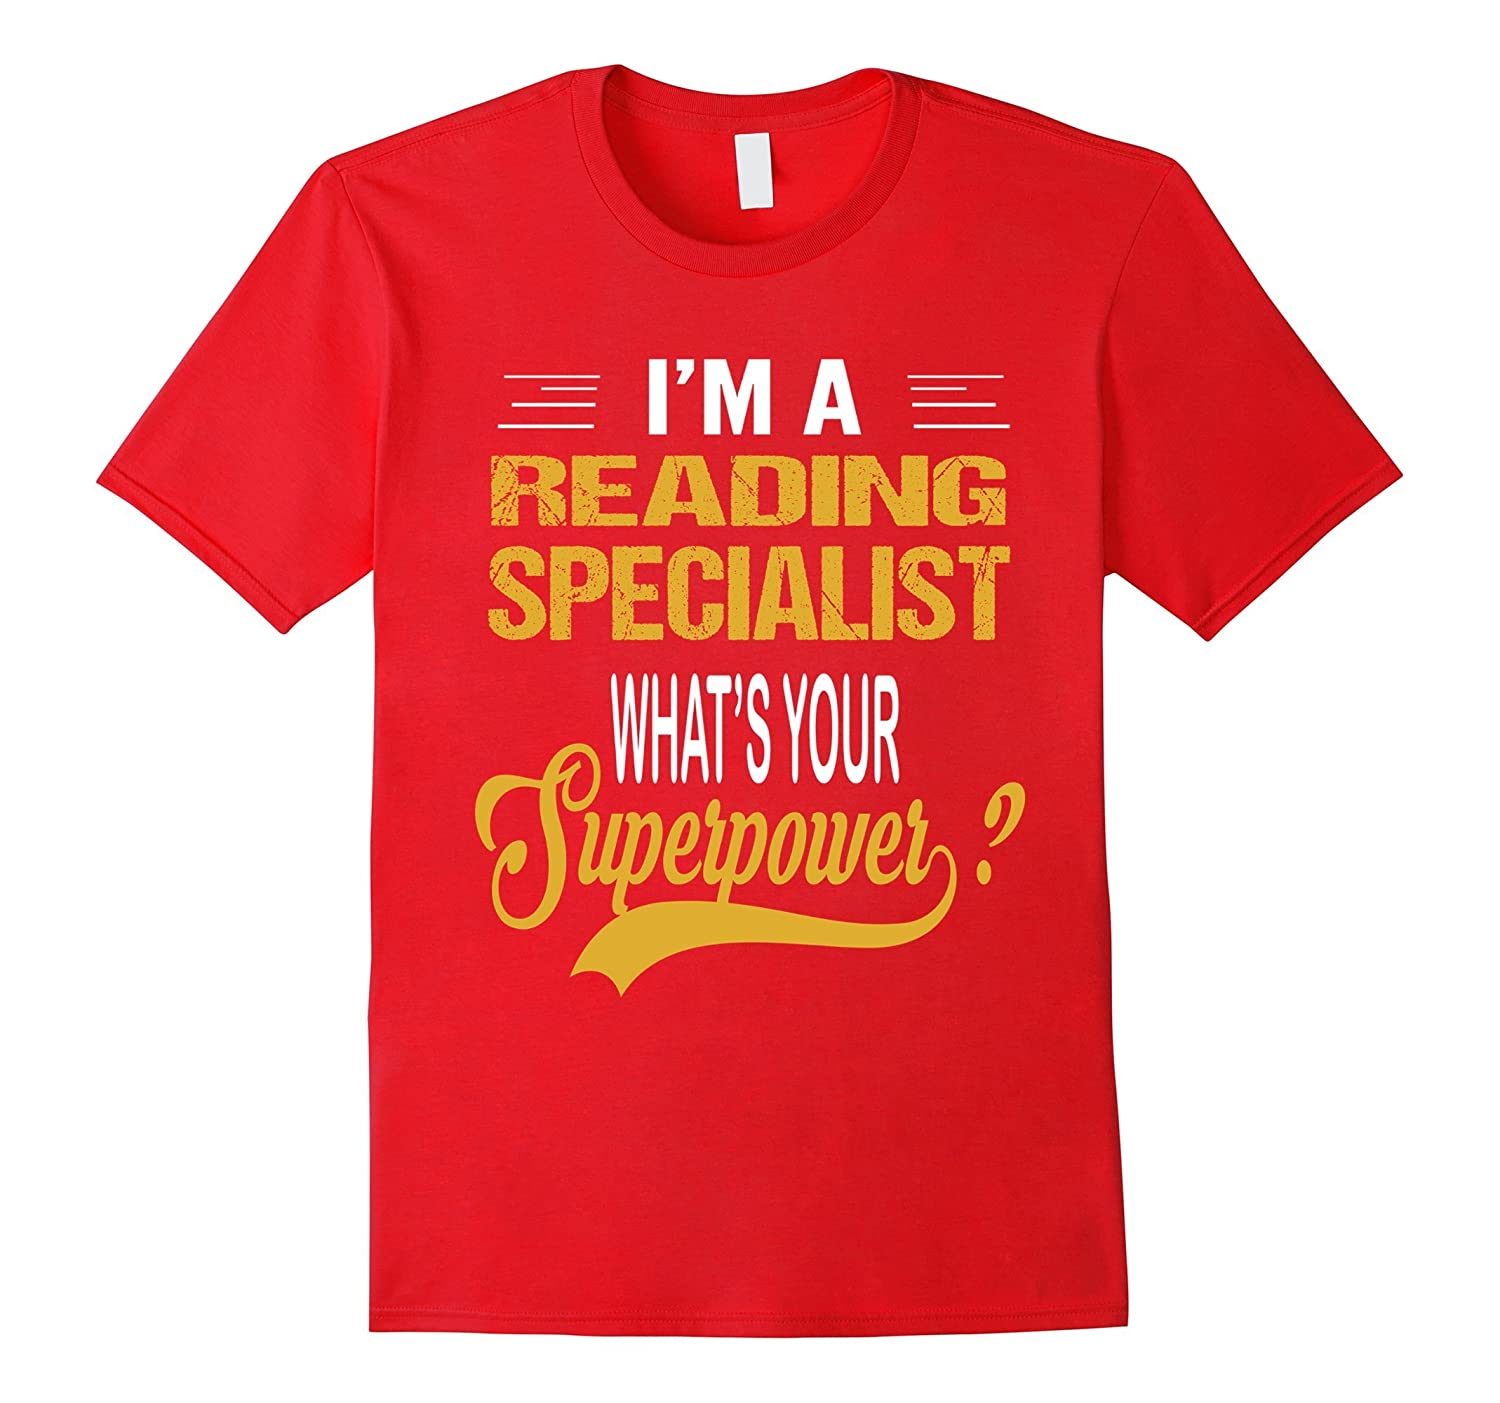 READING SPECIALIST - Whats Your Superpower T-Shirt-Vaci